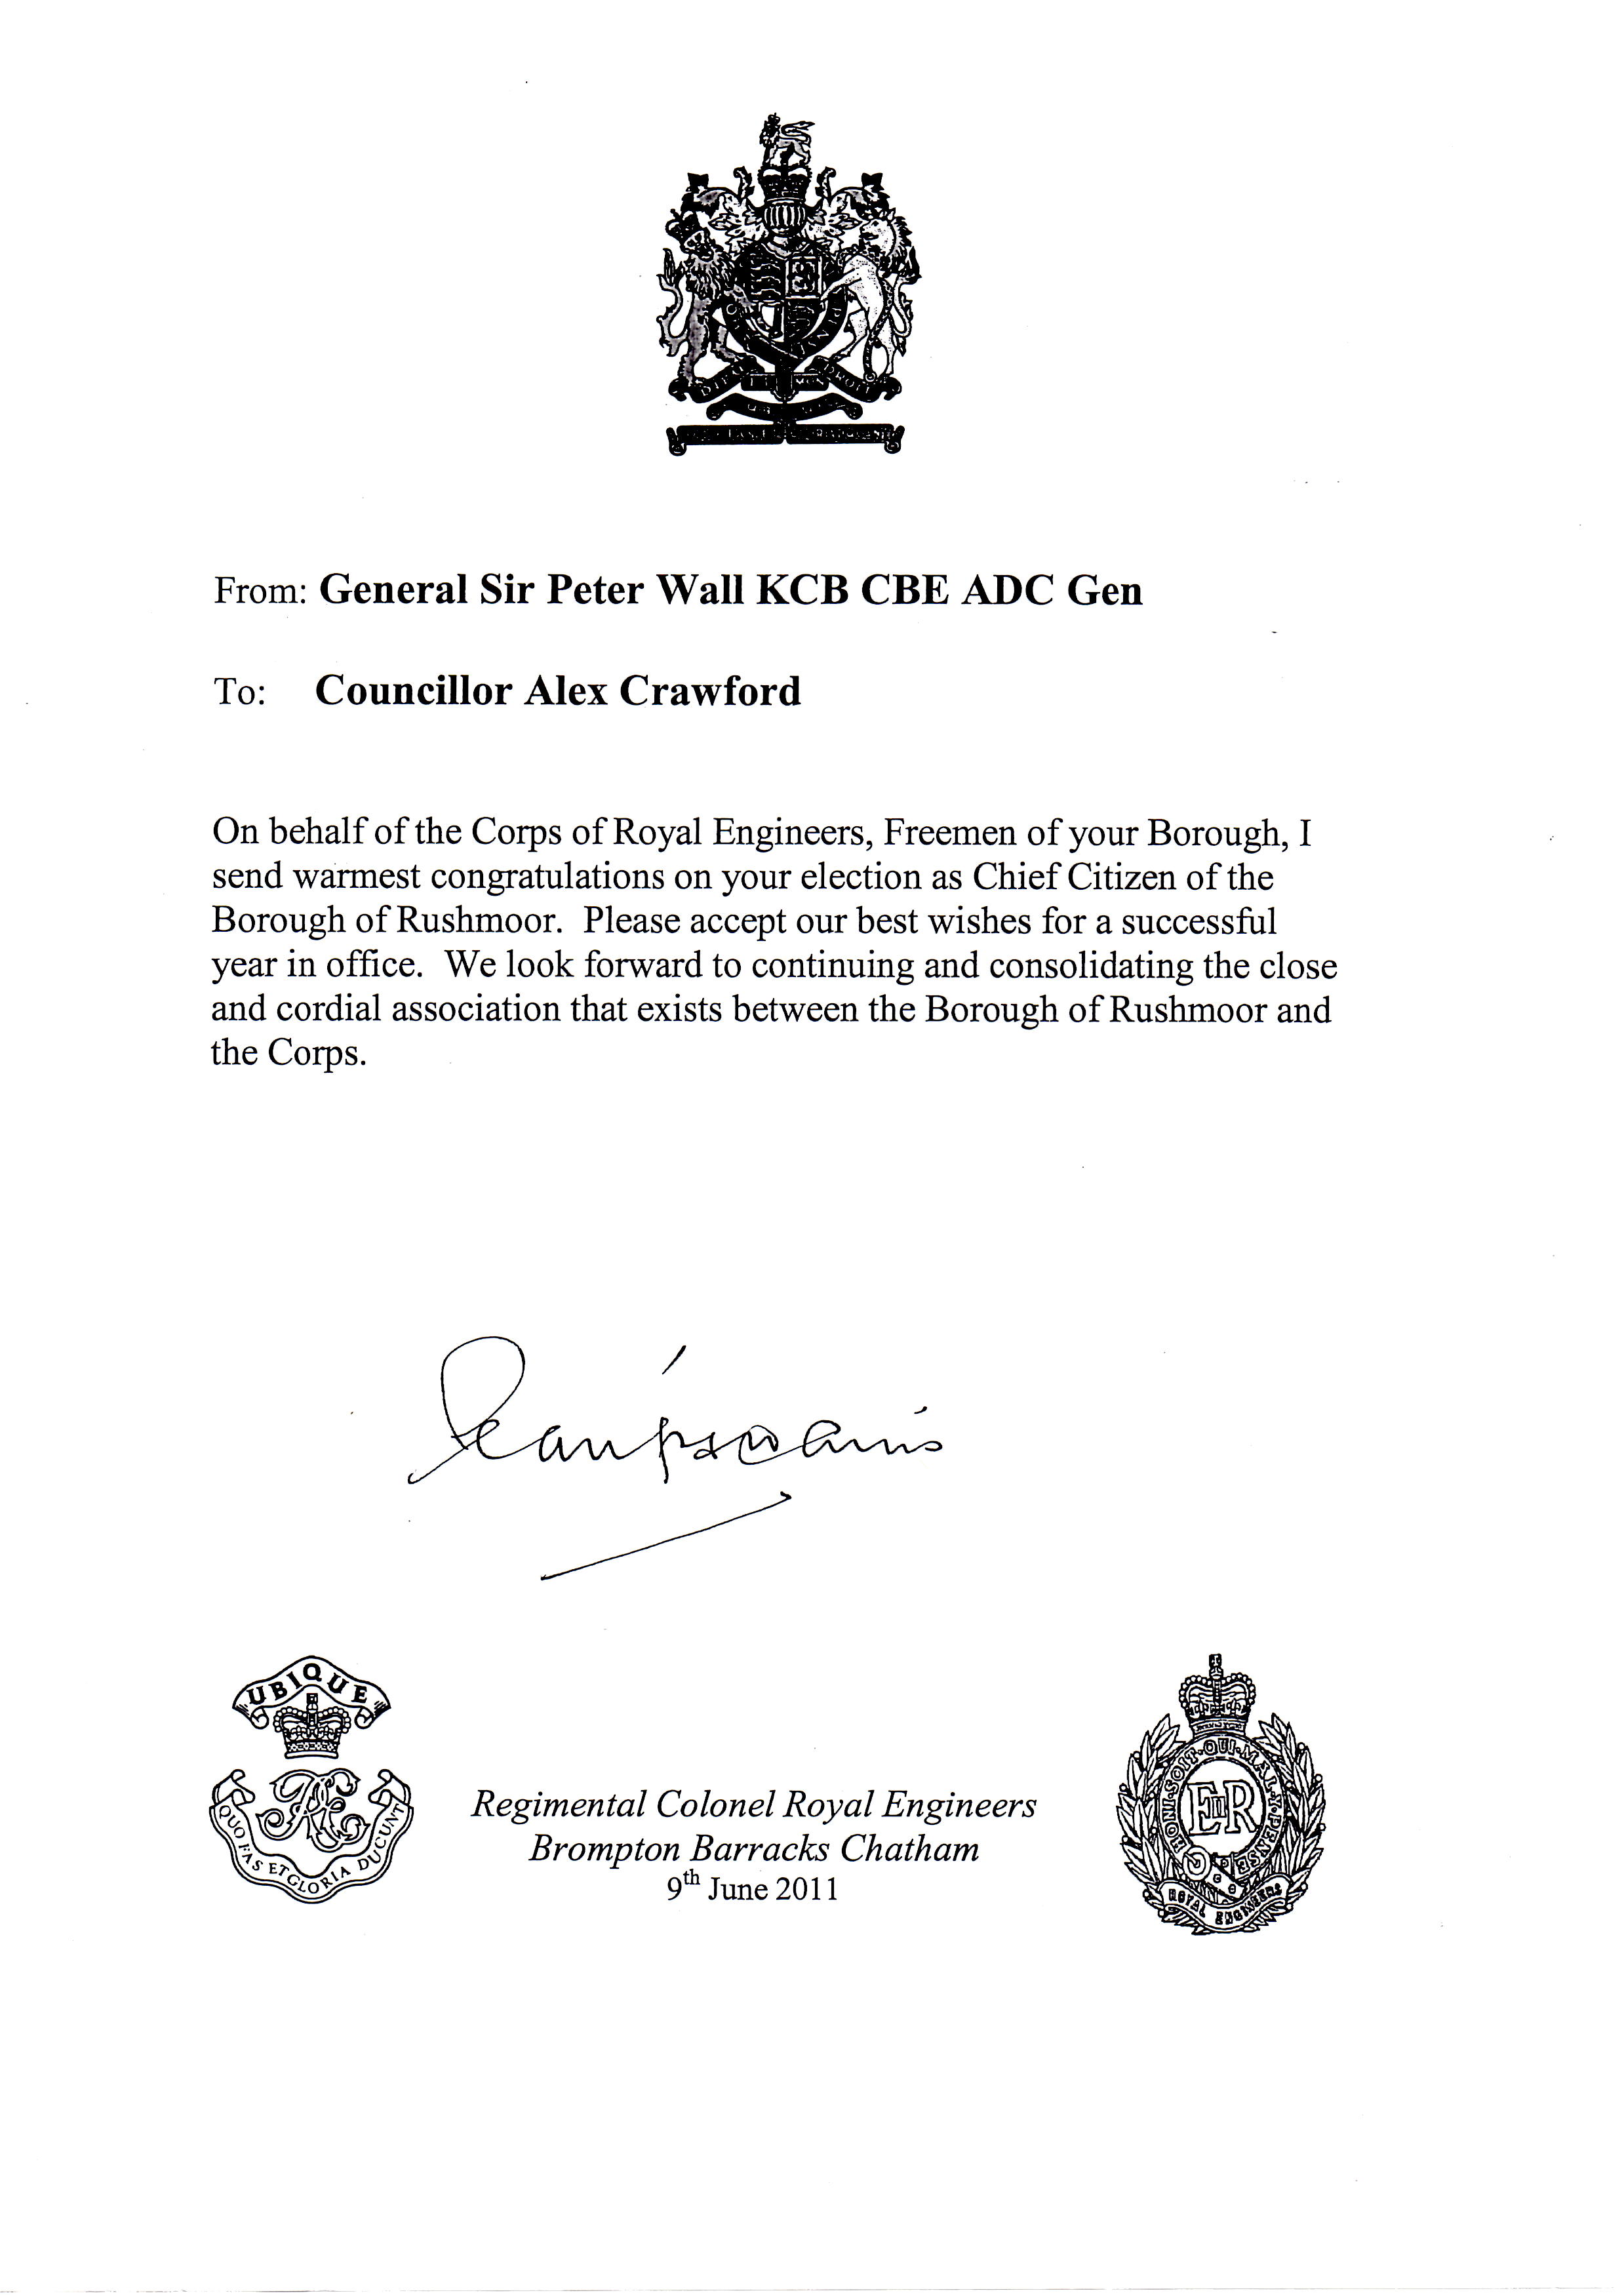 Congratulations on behalf of the corps of royal engineers mayor of share this altavistaventures Choice Image